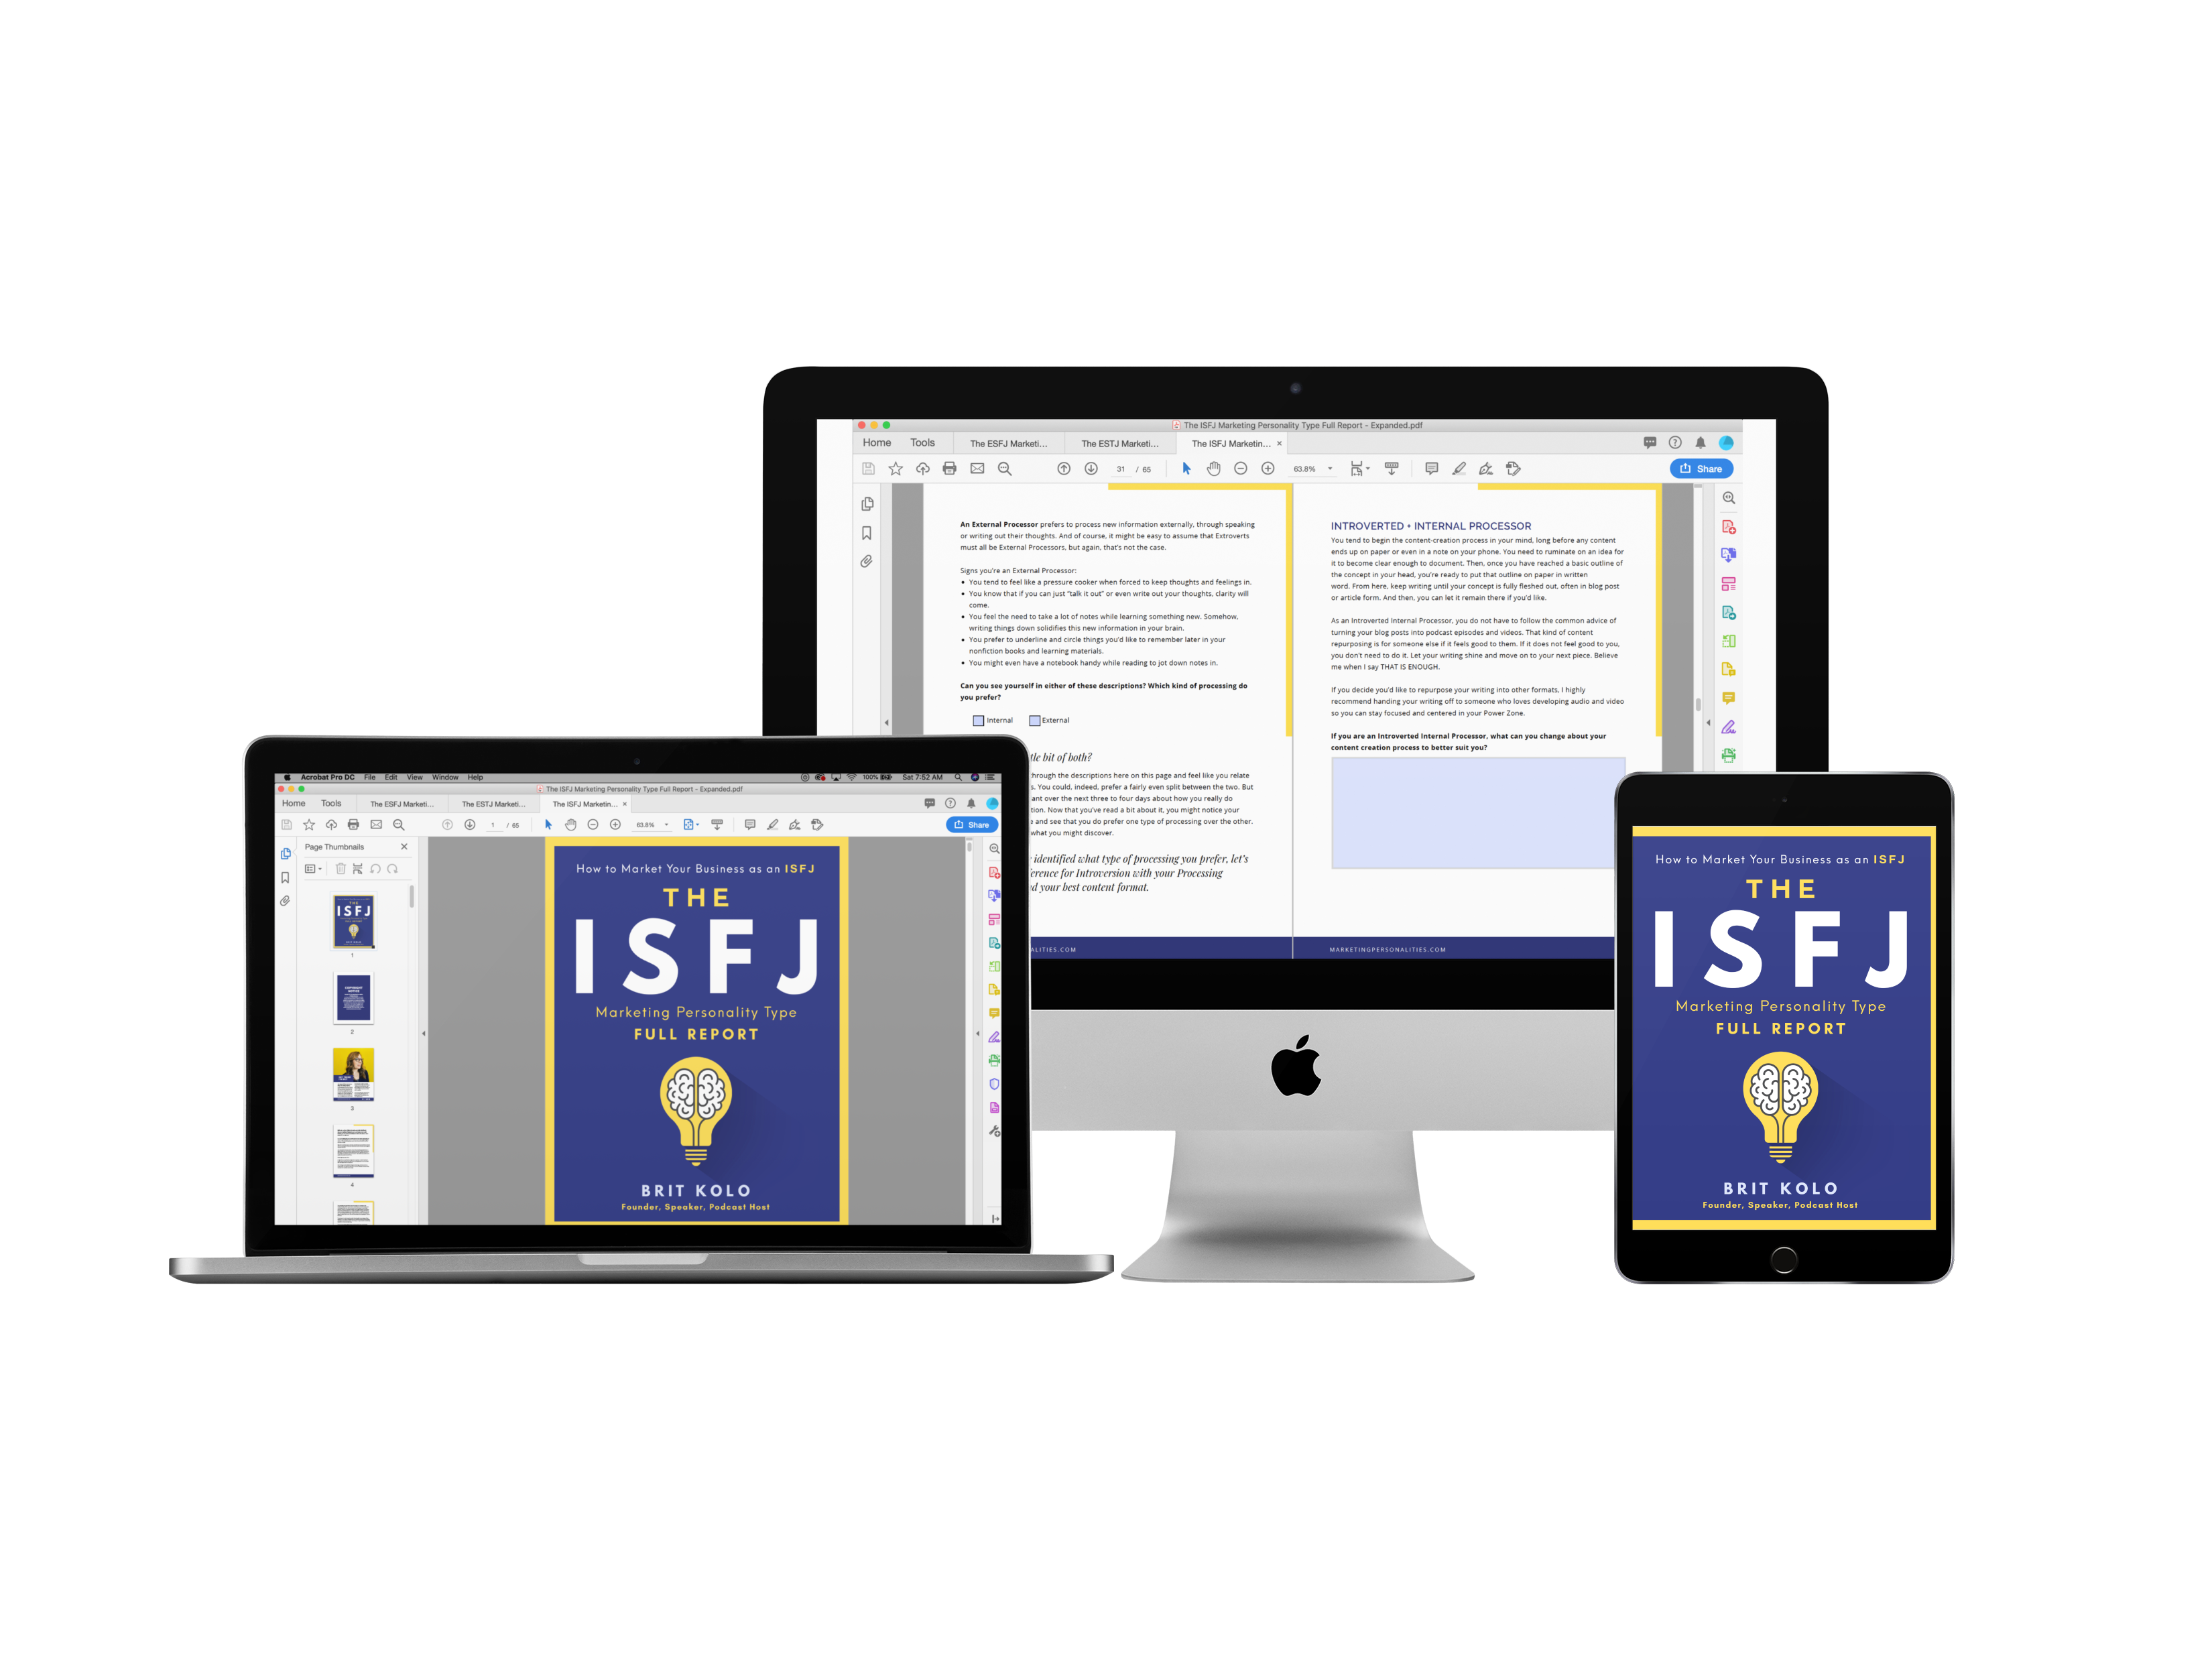 ISFJ Marketing Personality Type Full Report Product